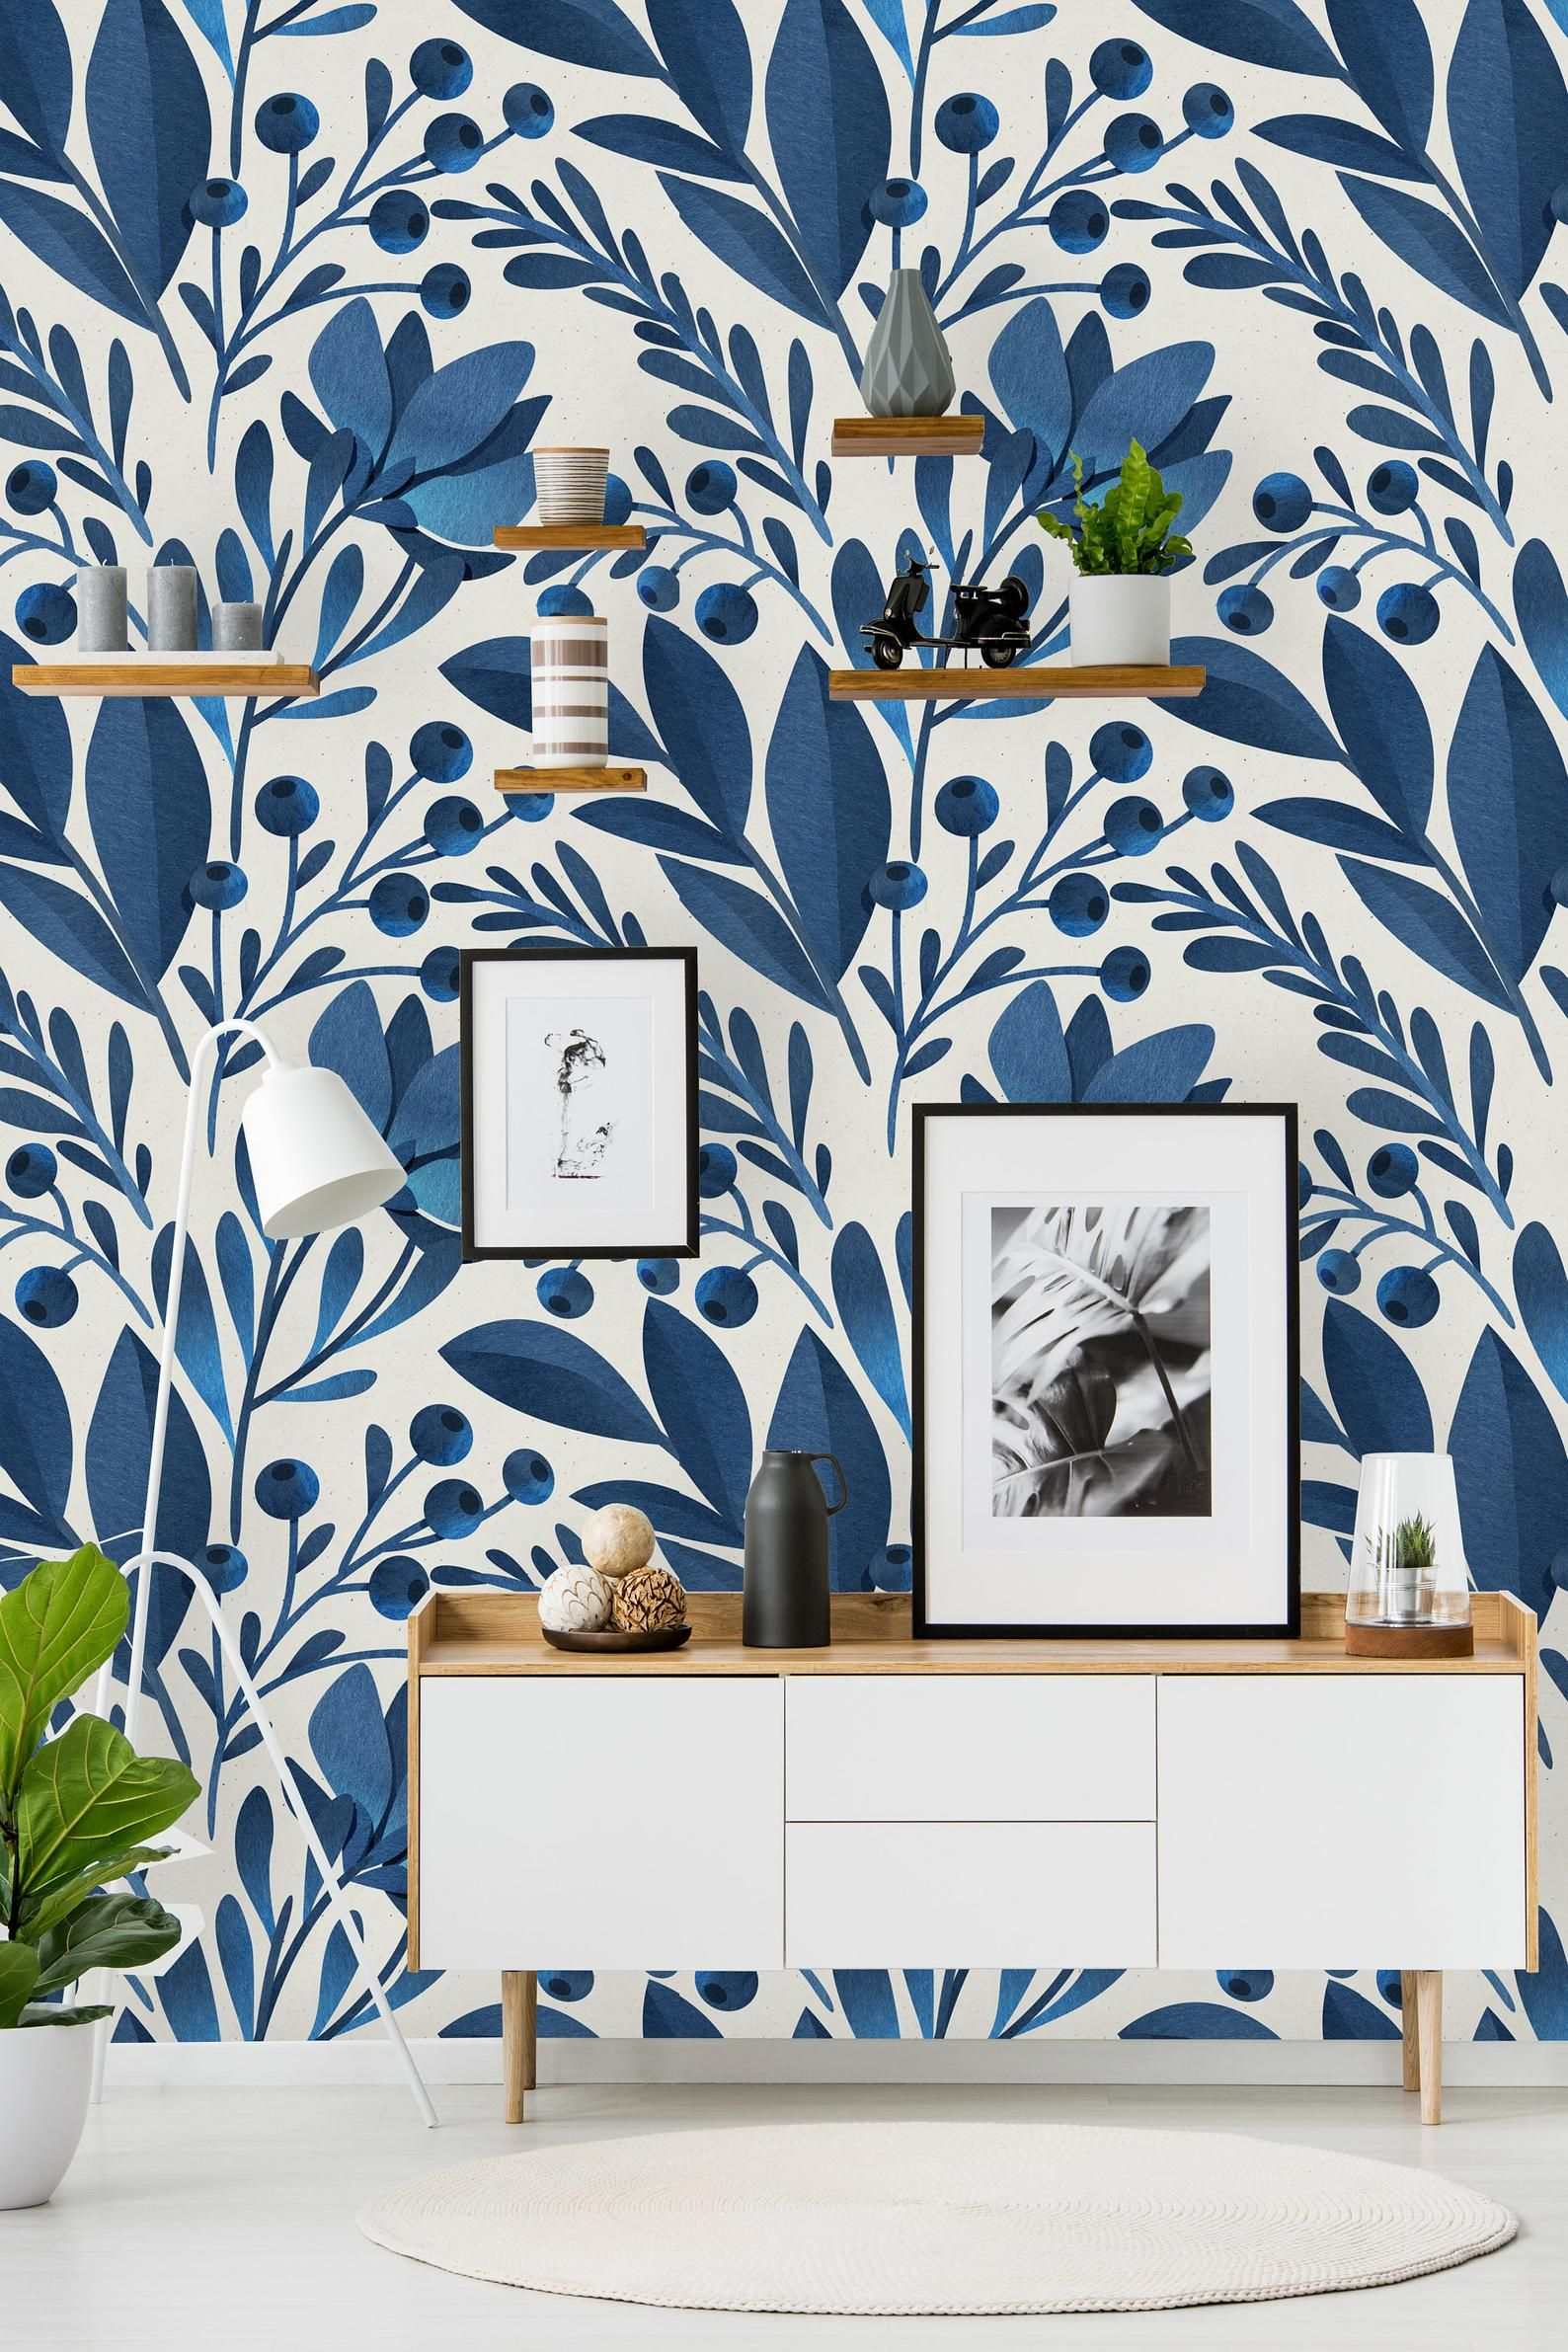 Removable Wallpaper Peel And Stick Wallpaper Self Adhesive Etsy In 2021 Removable Wallpaper Peel And Stick Wallpaper Bathroom Wallpaper